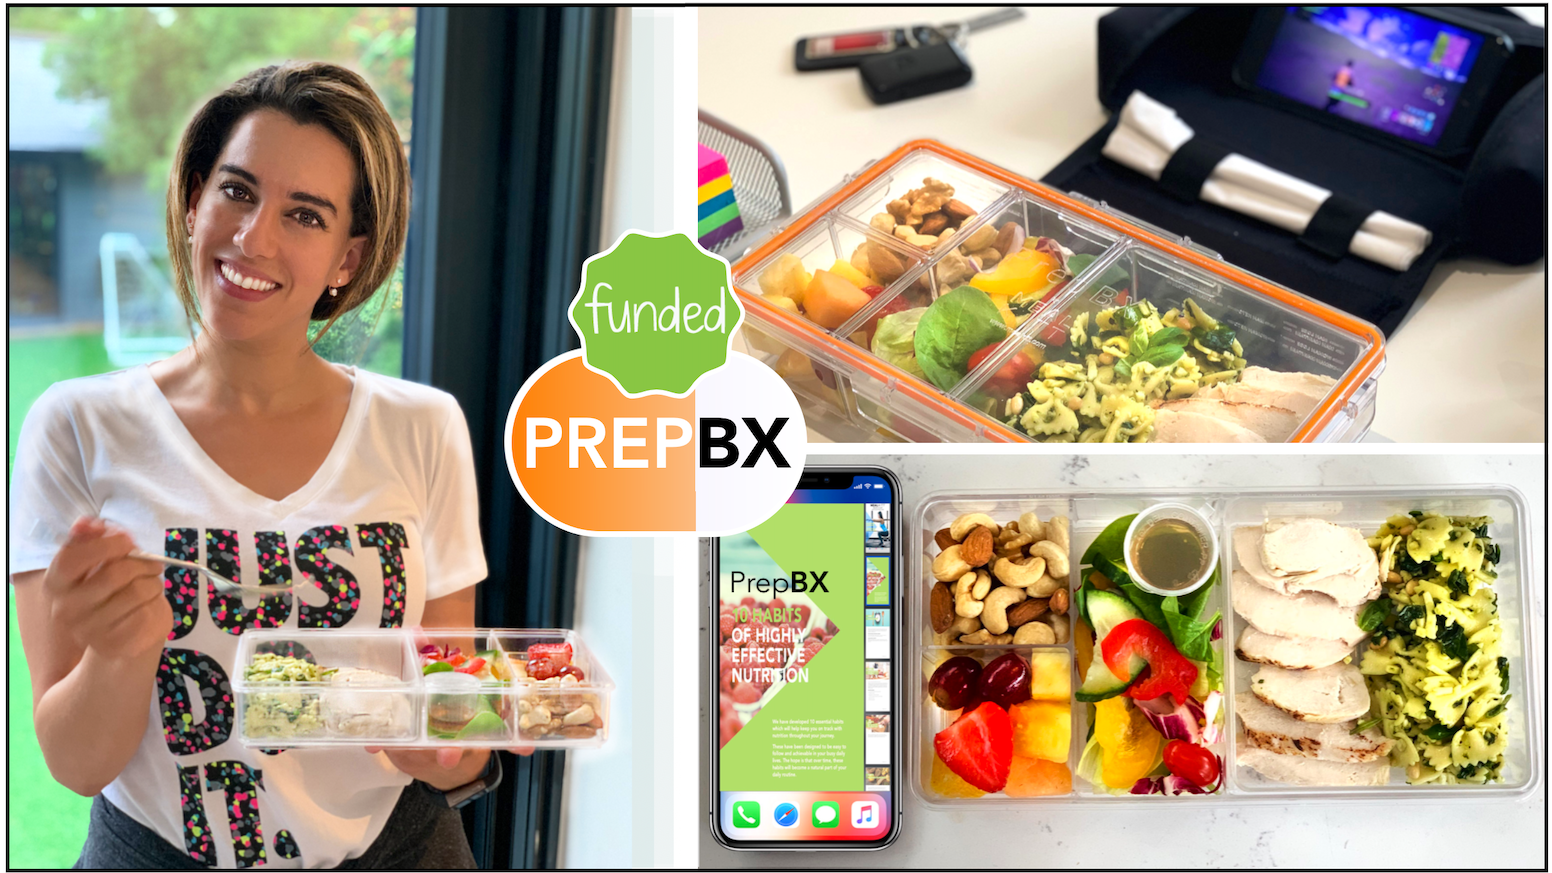 Quickly Prep Lunch • Durable • Leak Proof • Comes With A Carry Case + Phone Holder • Compact & Quick To Clean • Portion Guided Meals